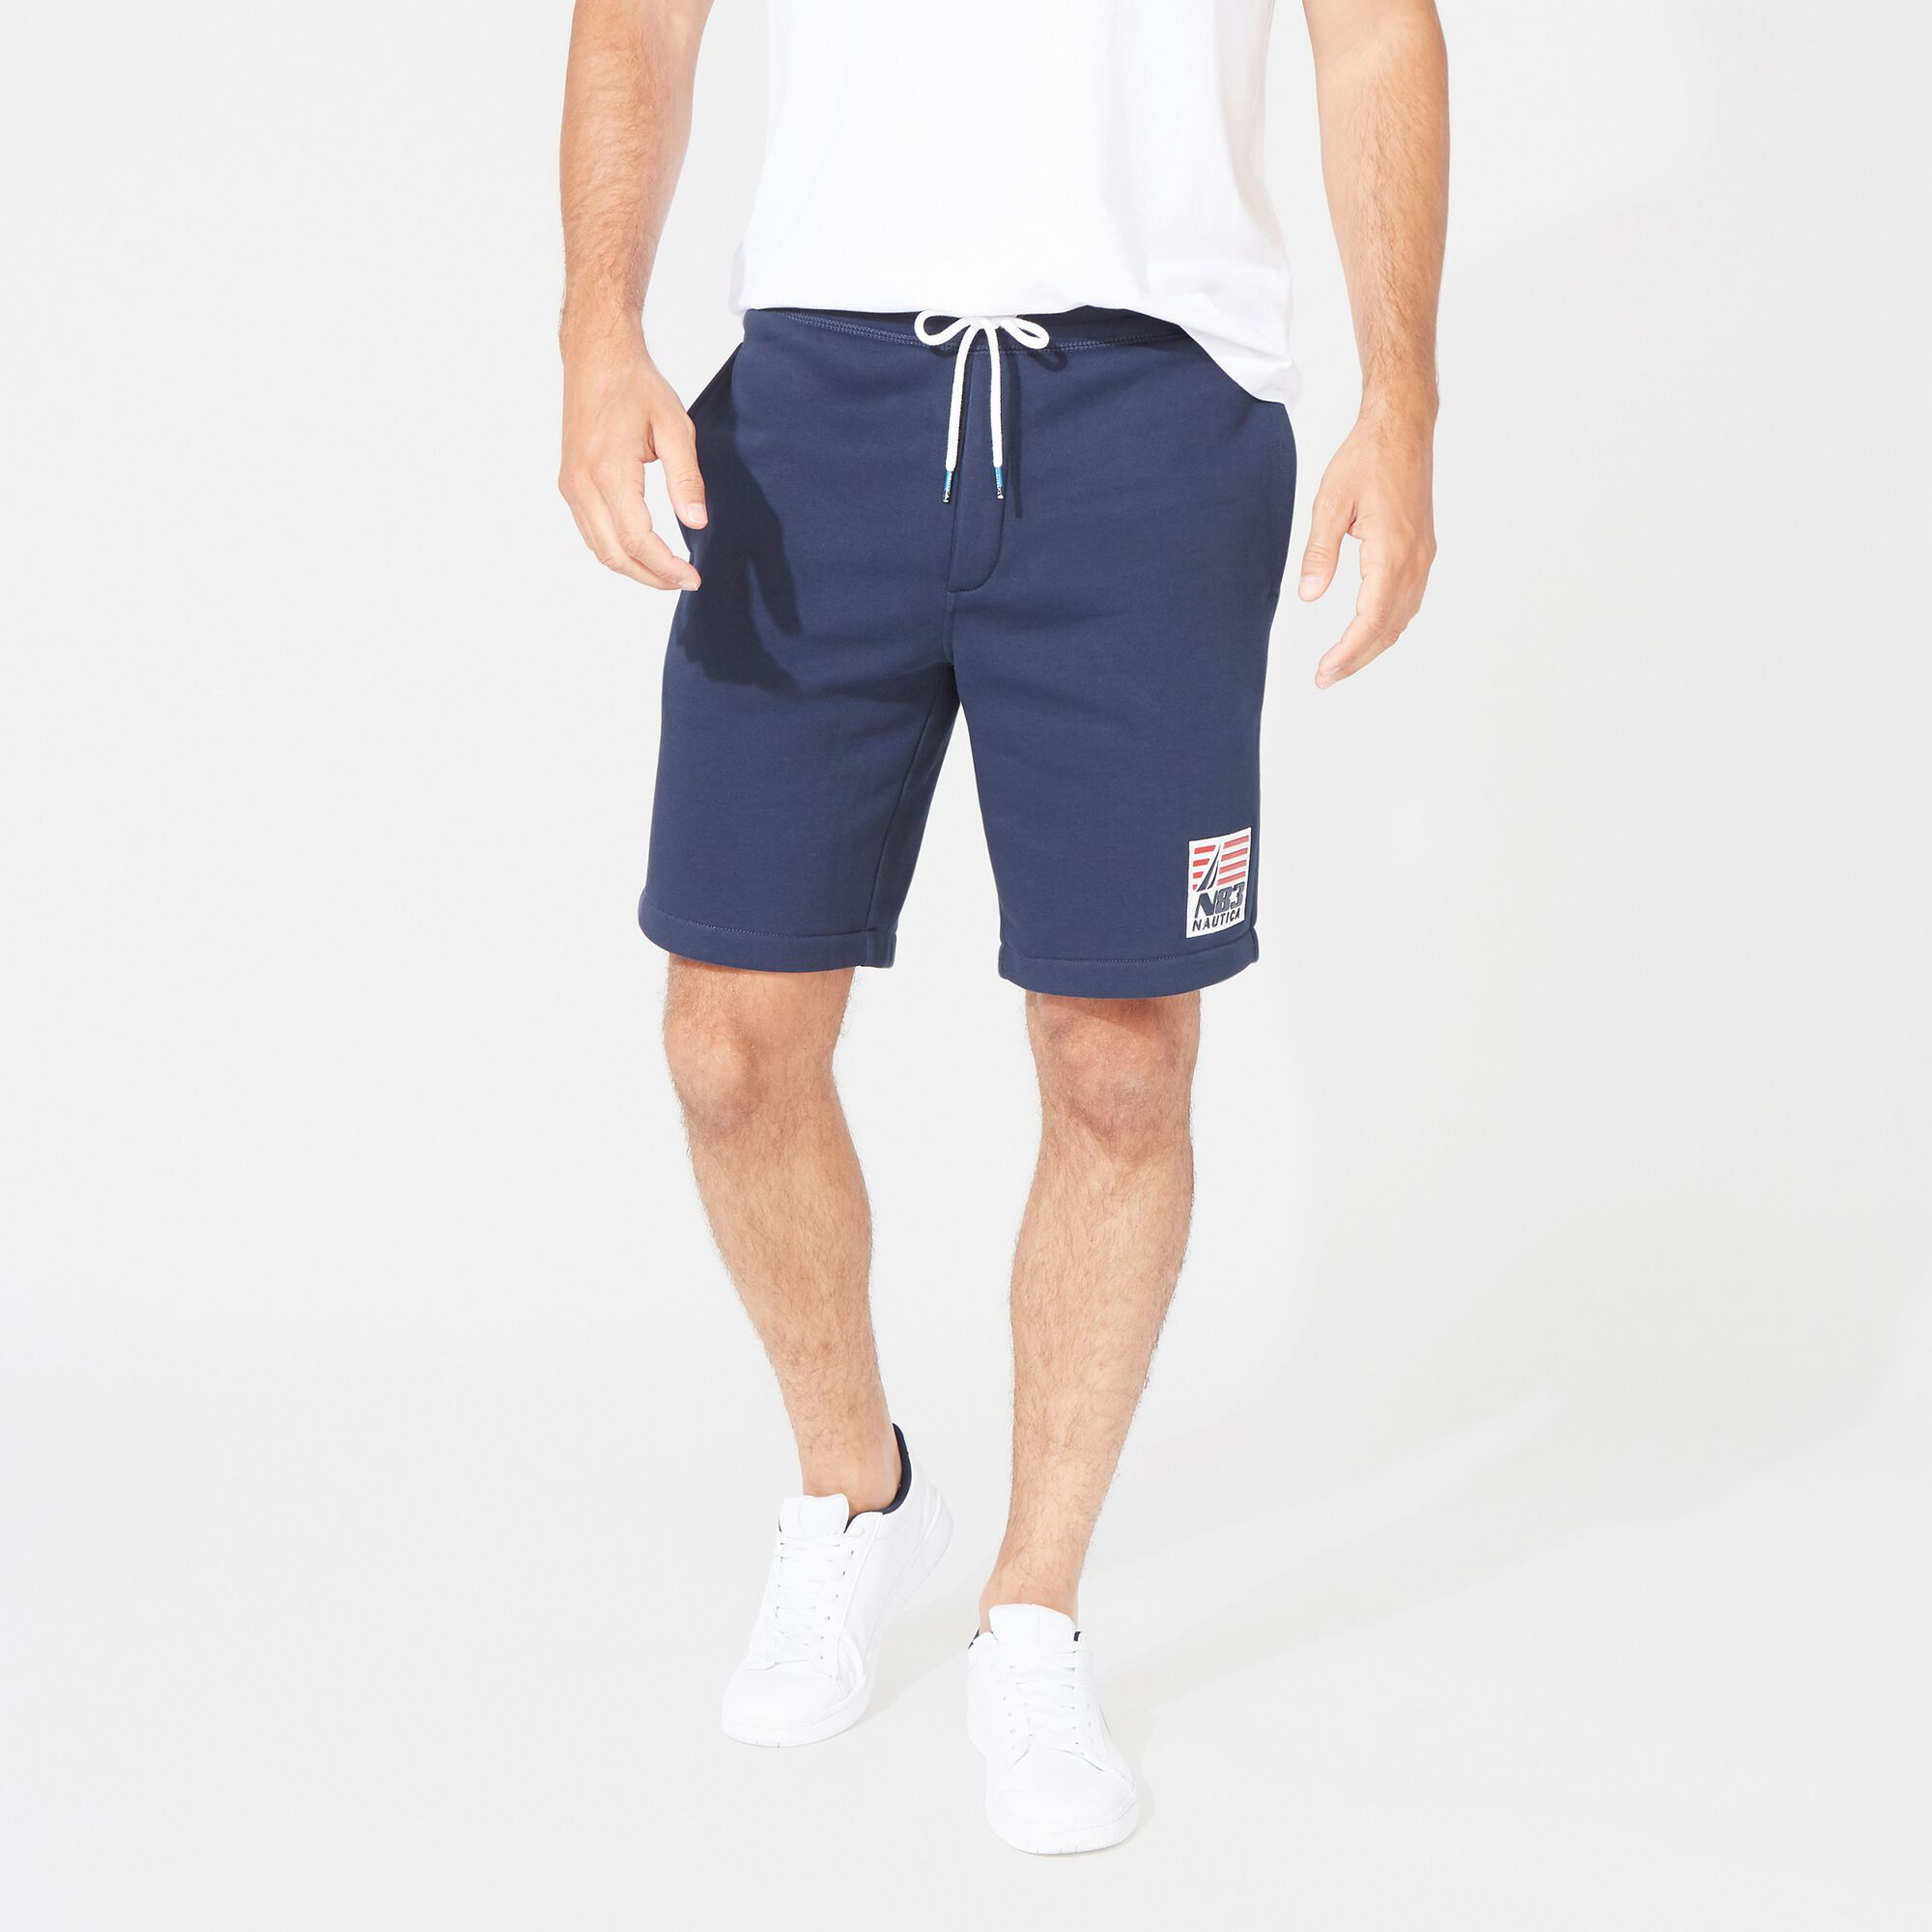 Neuf avec étiquette Homme NAUTICA Sailor Red Belted Short kaki taille 38 casual